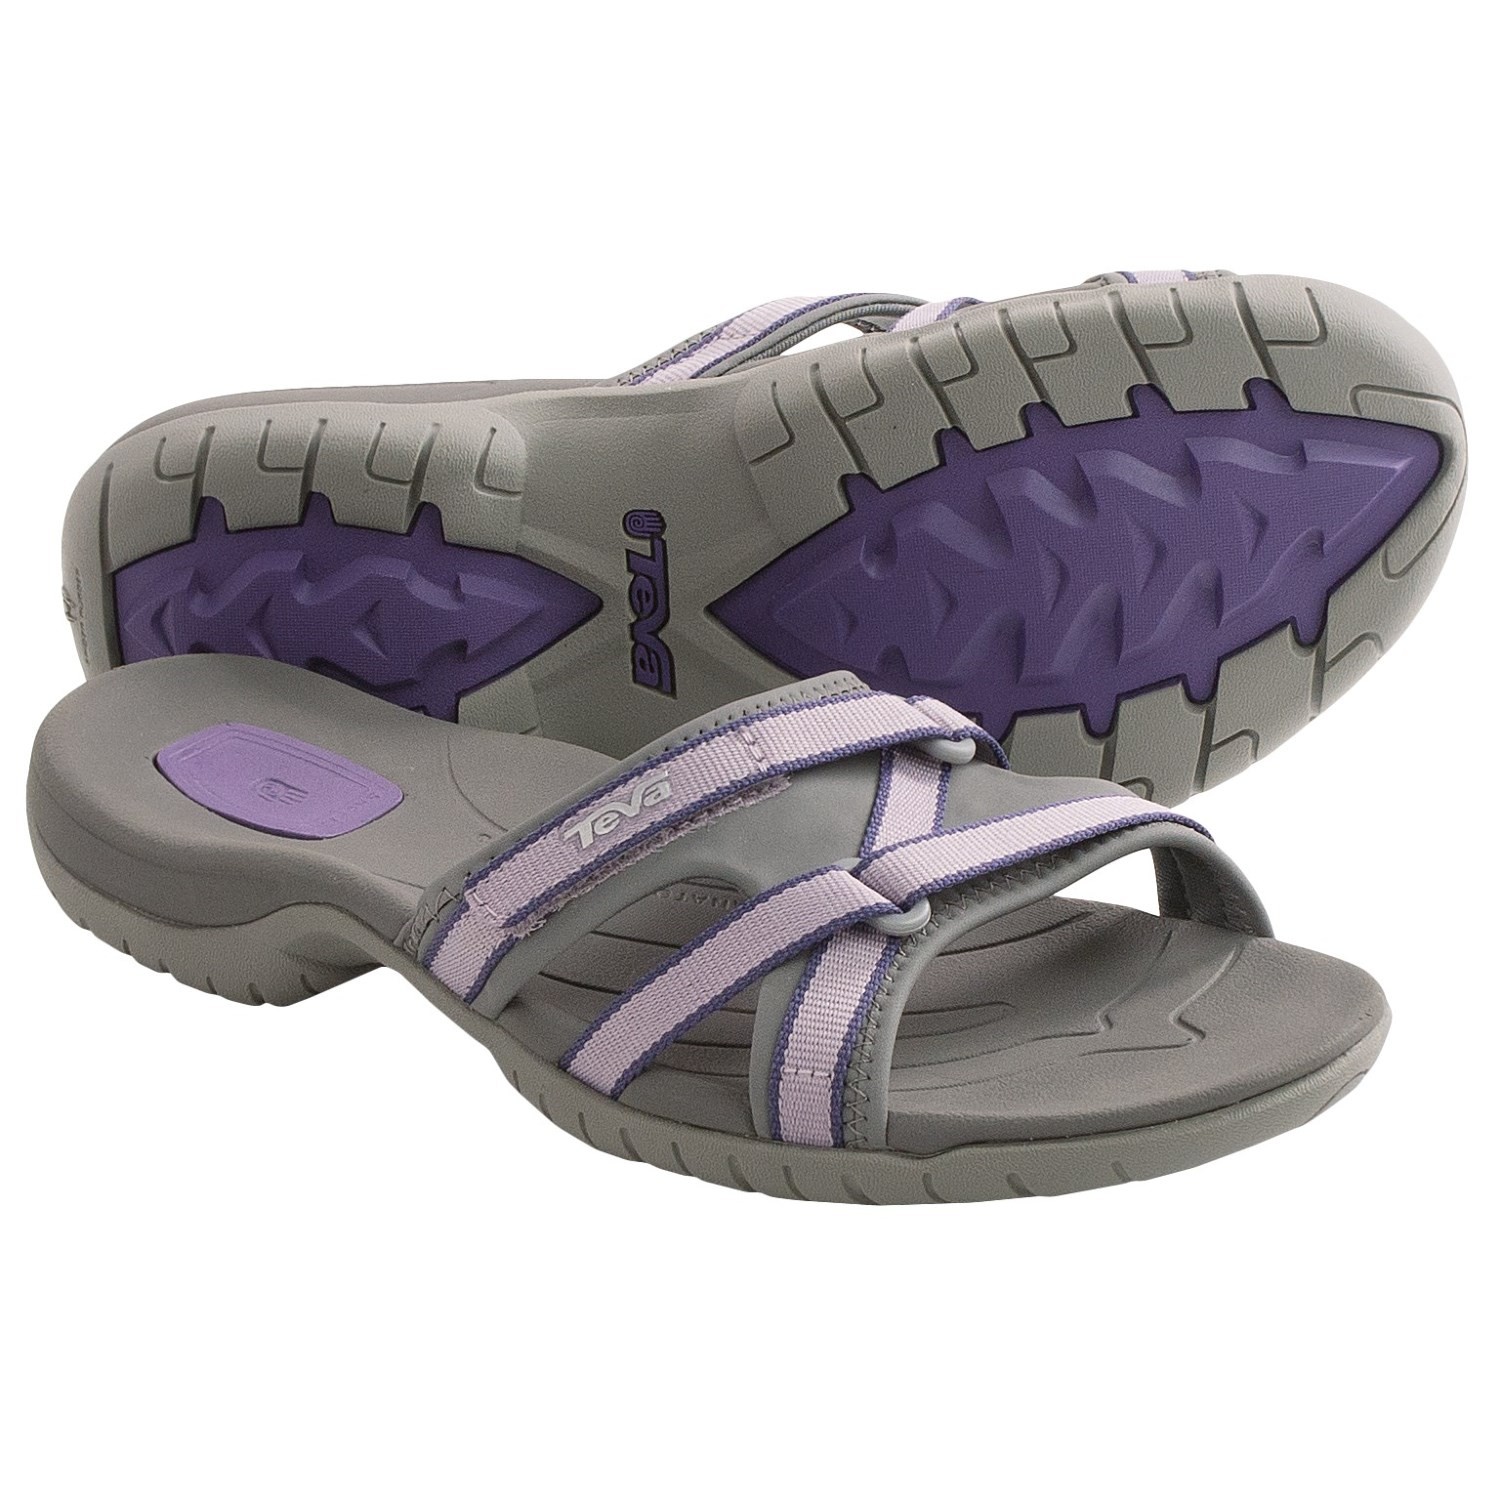 Teva Shoes - Outdoor Sandals, Hiking Shoes & Casual Shoes by Teva